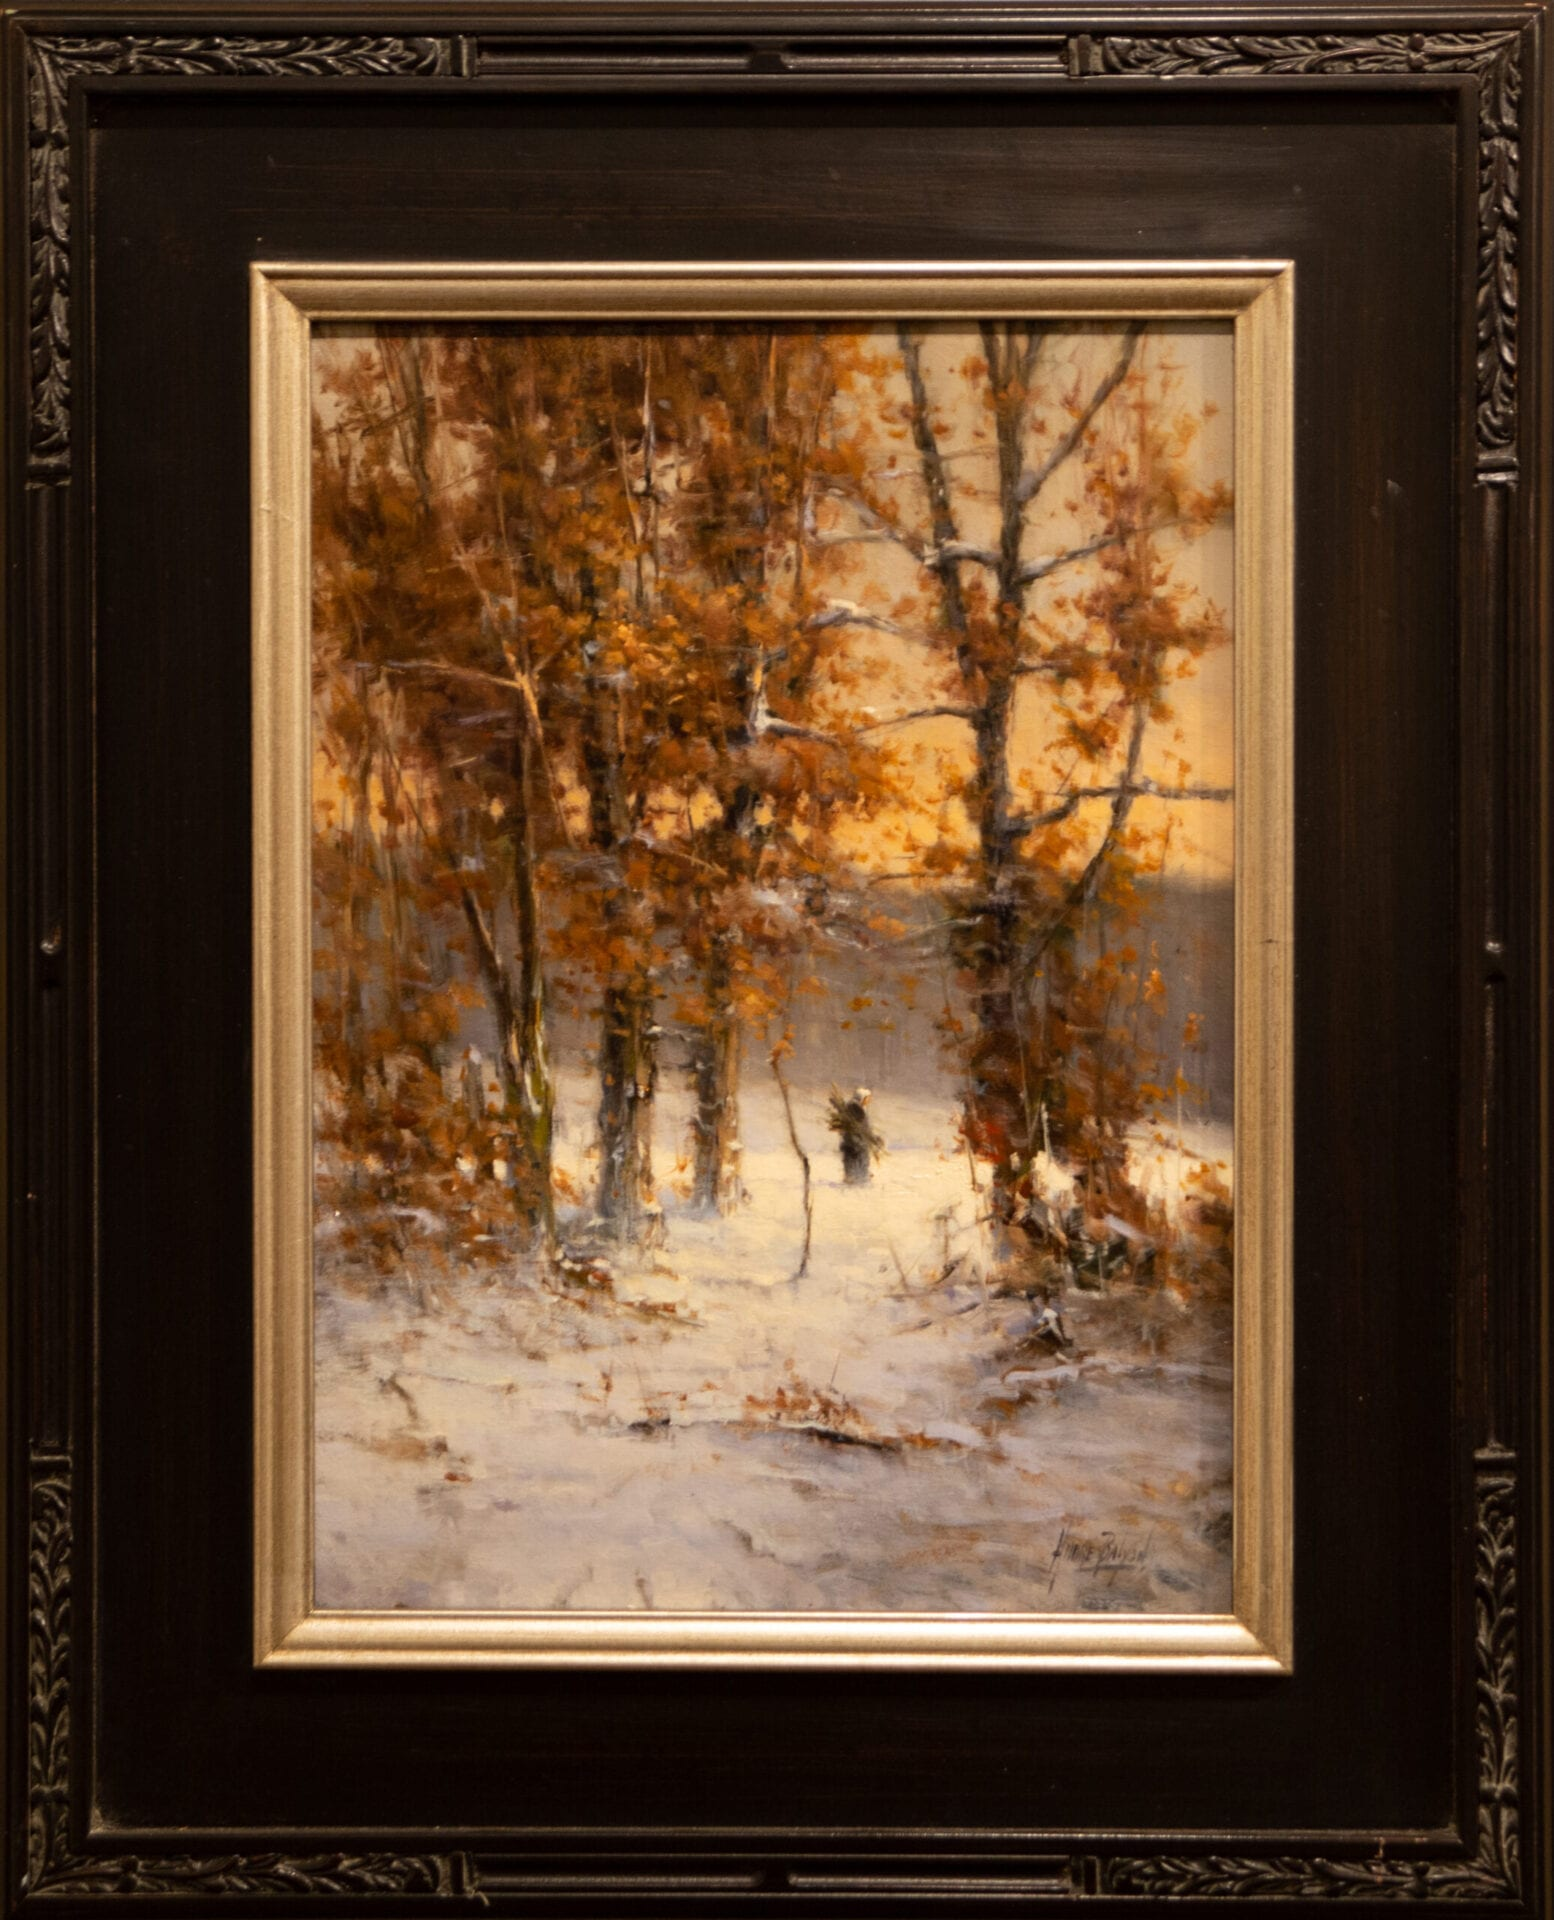 In a Winter's Forest | Andre Balyon | Oil | 19 x 14""